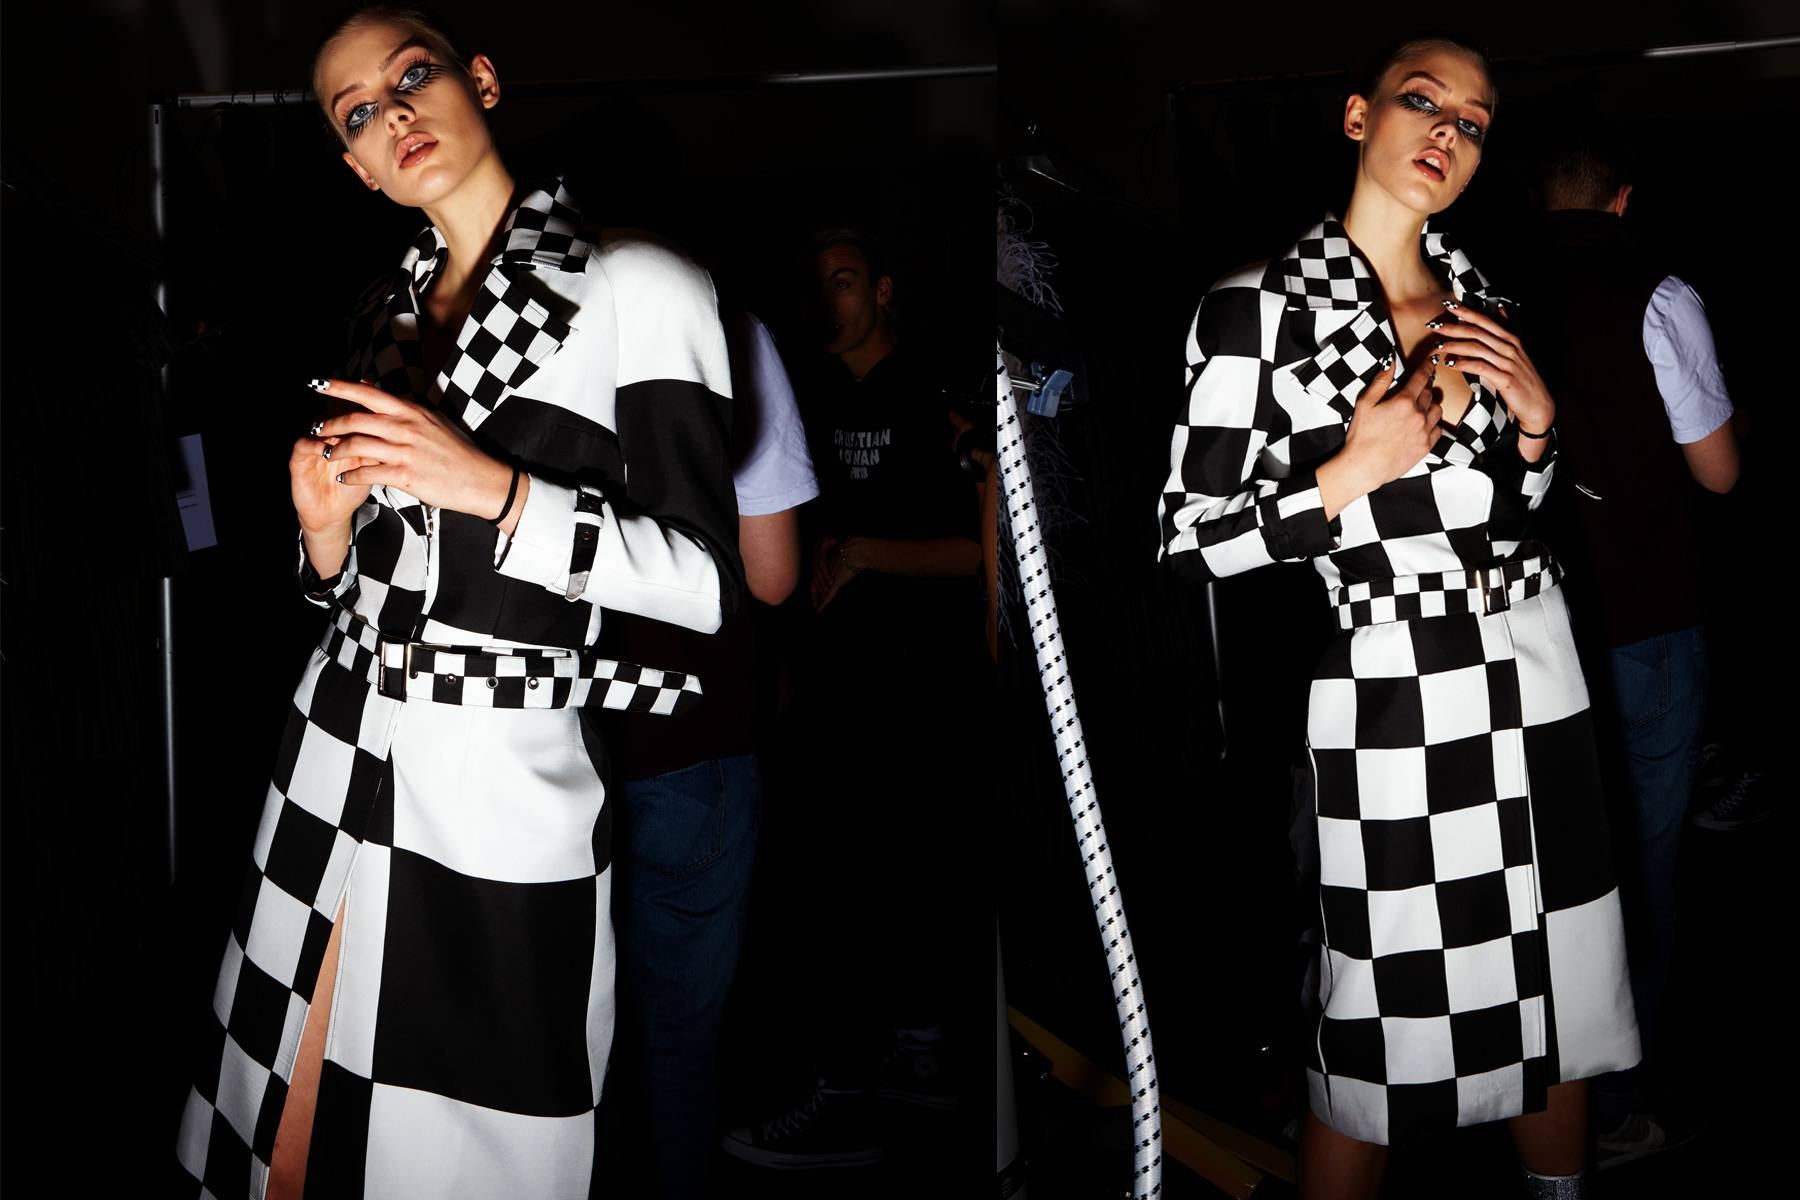 A B&W op-art trench backstage at Christian Cowan for Fall 2018. Photography by Alexander Thompson for Ponyboy magazine.